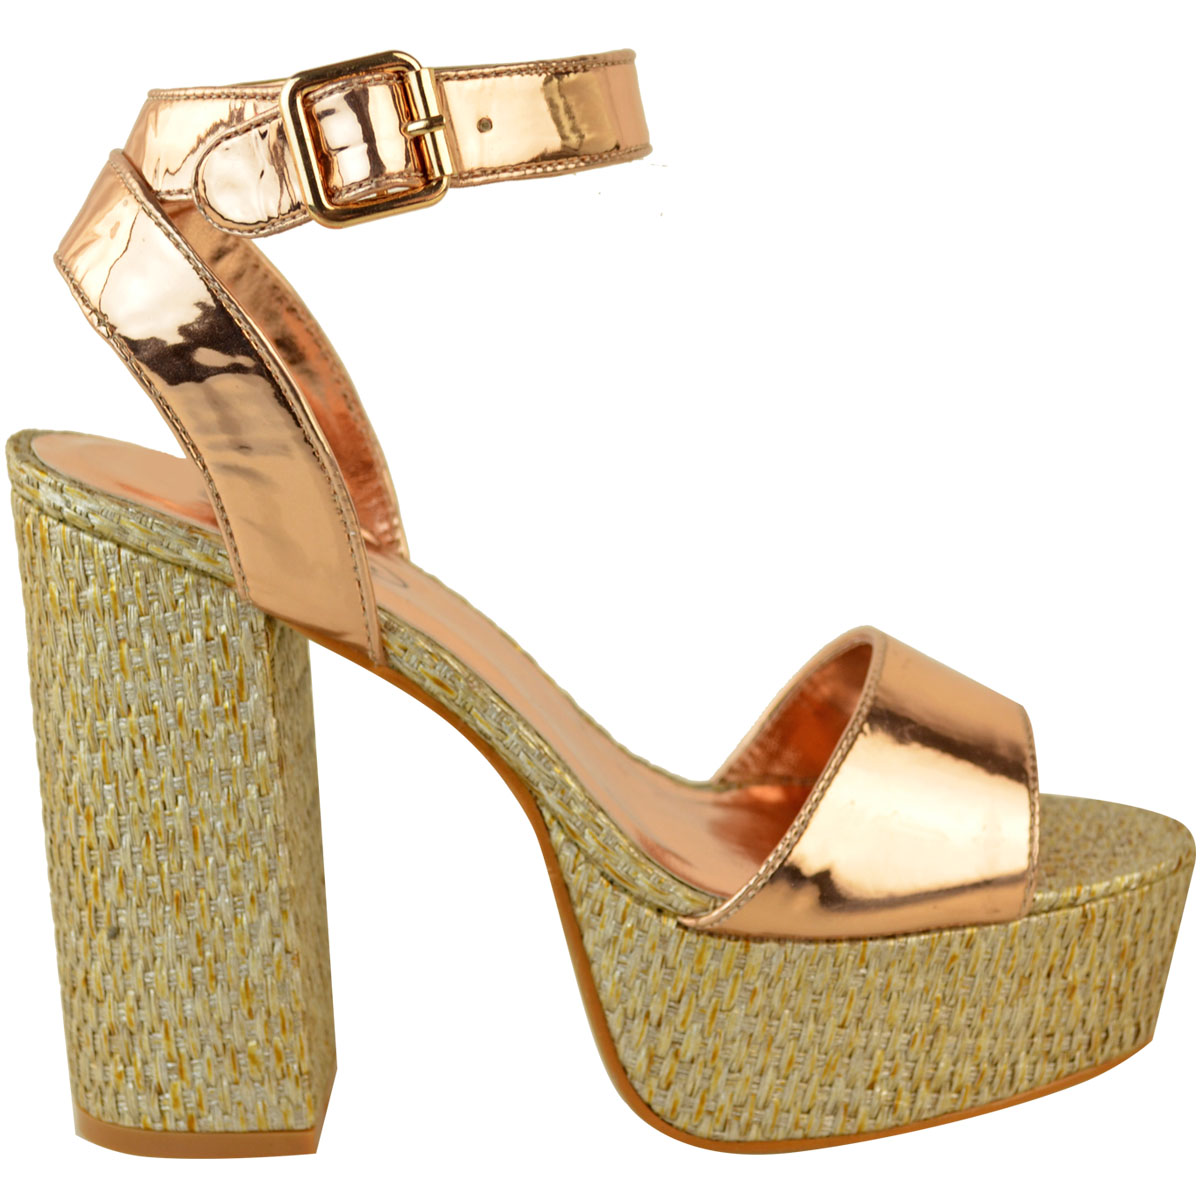 Womens-Ladies-Platforms-Sandals-Block-Heel-Ankle-Strap-Summer-Barely-There-Size thumbnail 4